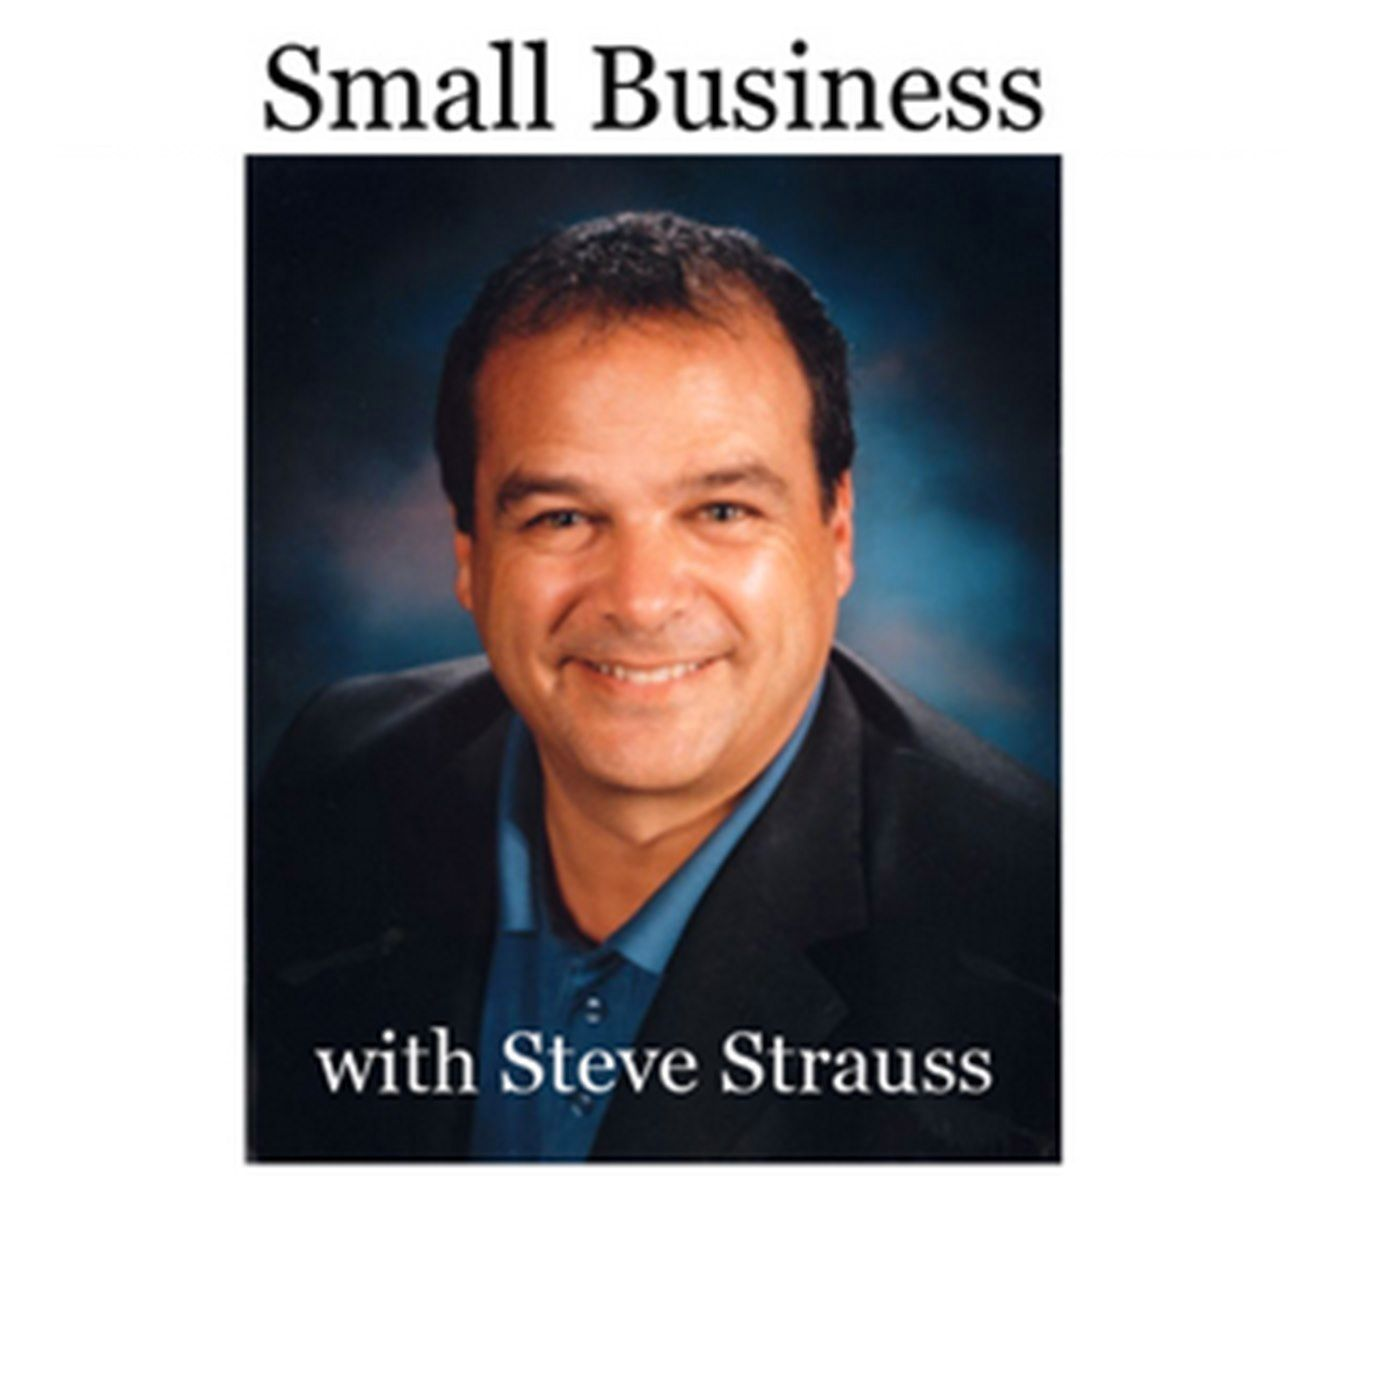 Take Your Business From Small to Big